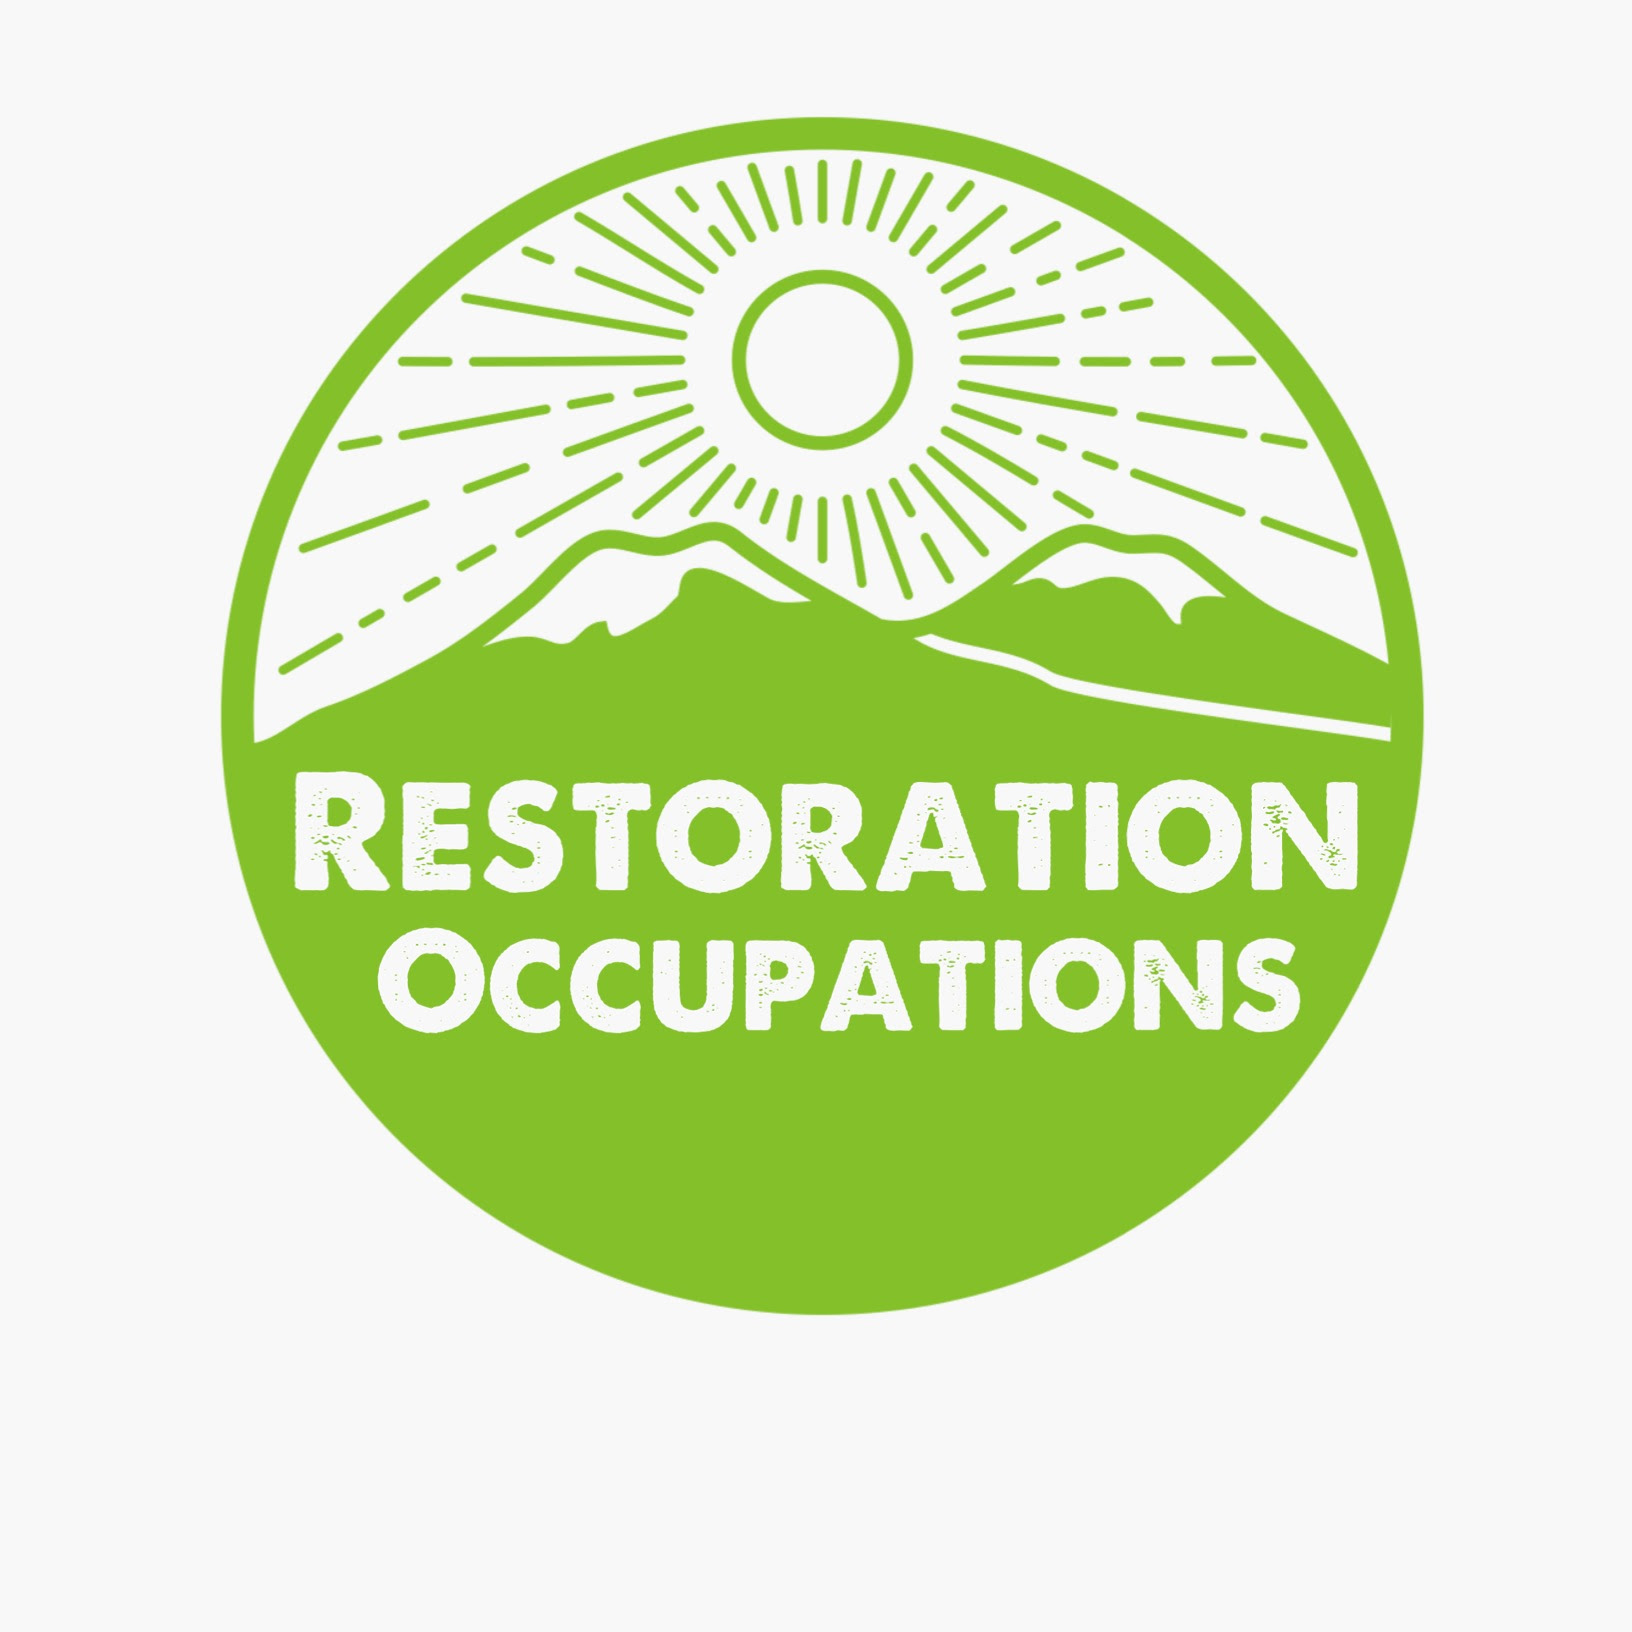 Restoration Occupations copy.jpg